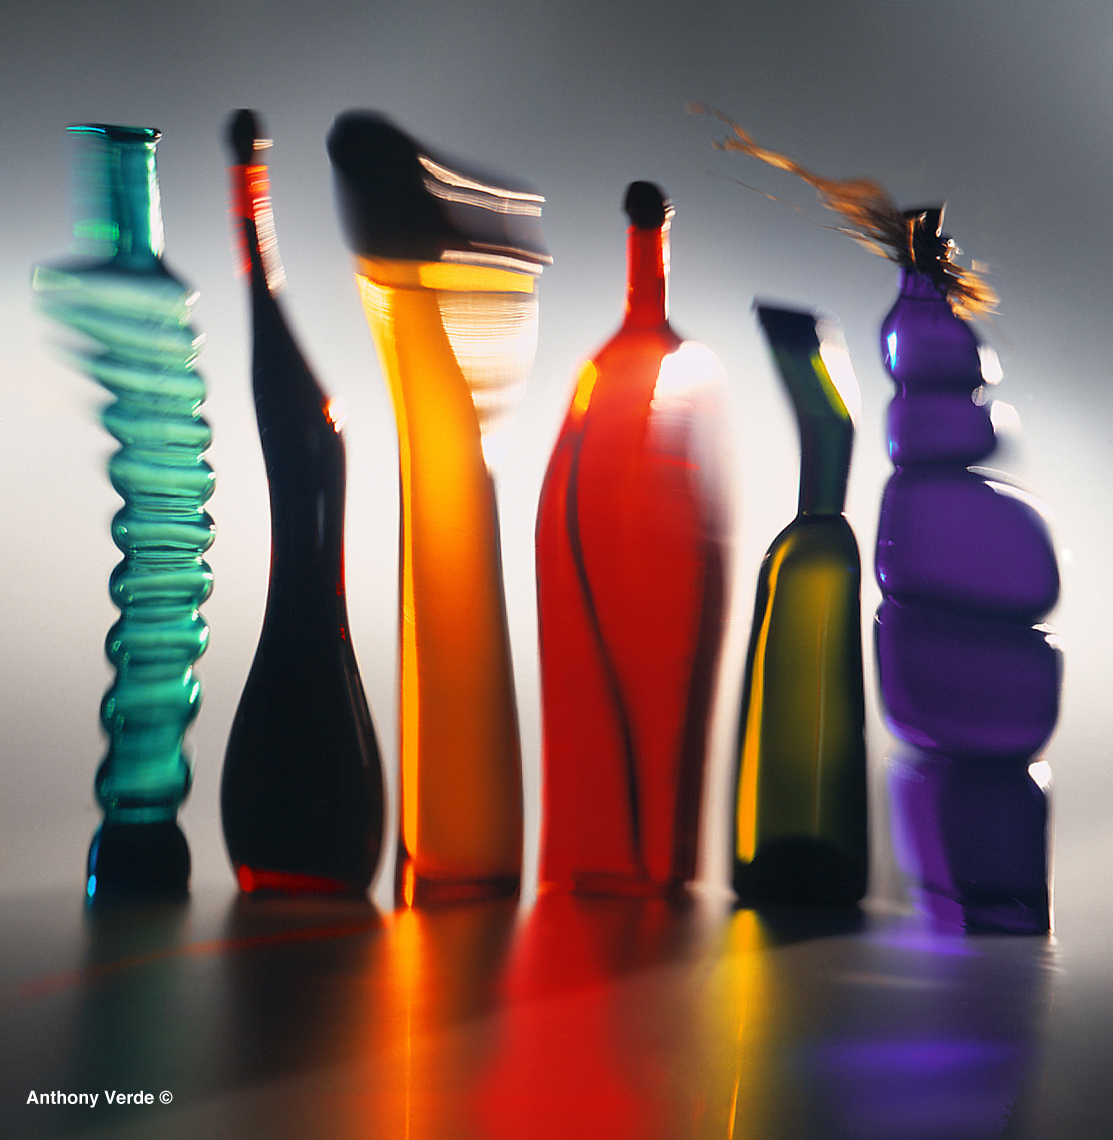 bottles-distorted-colorful-still-life-photography